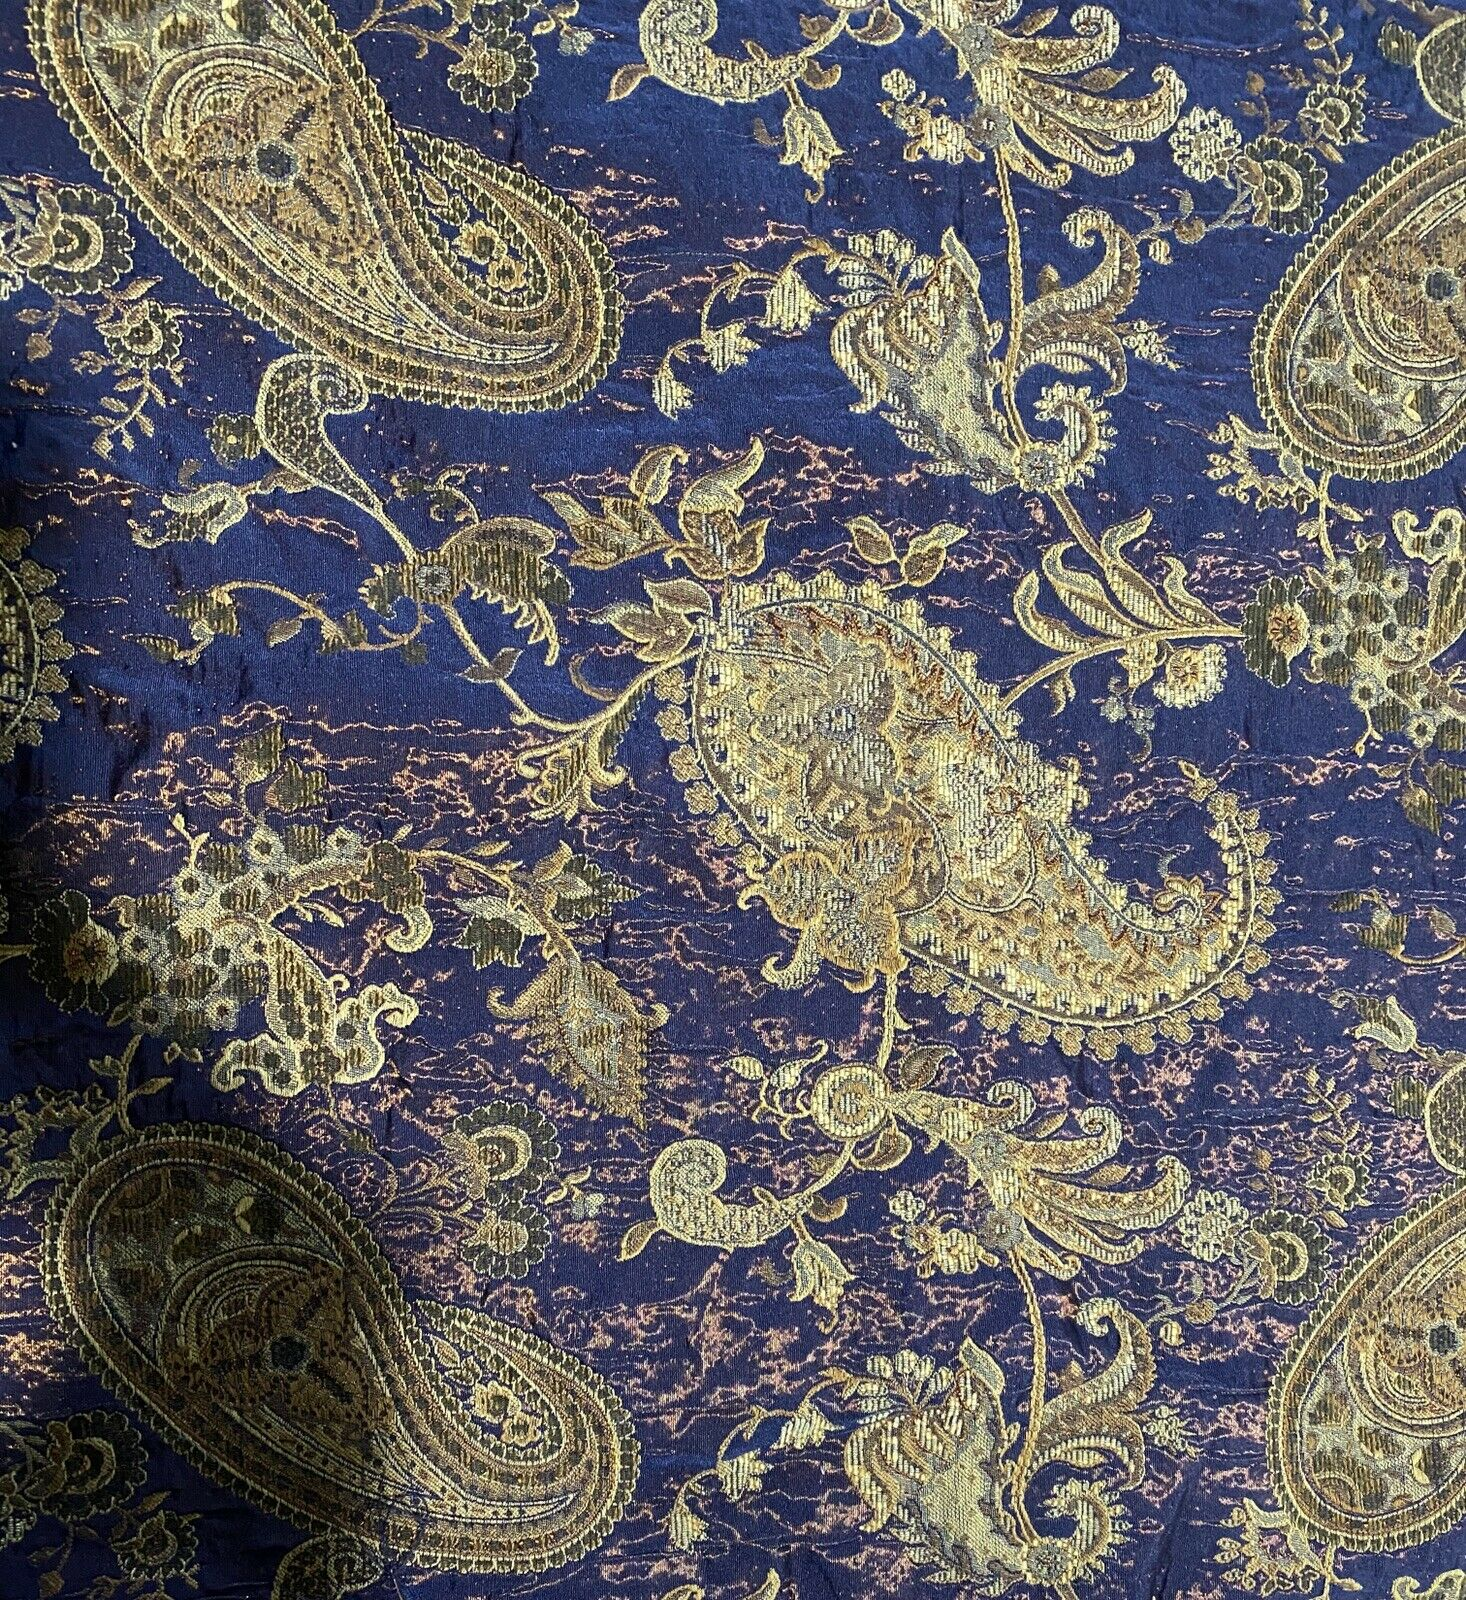 NEW Brocade Satin Paisley Drapery Upholstery Fabric- Electric Blue, Copper, Gold